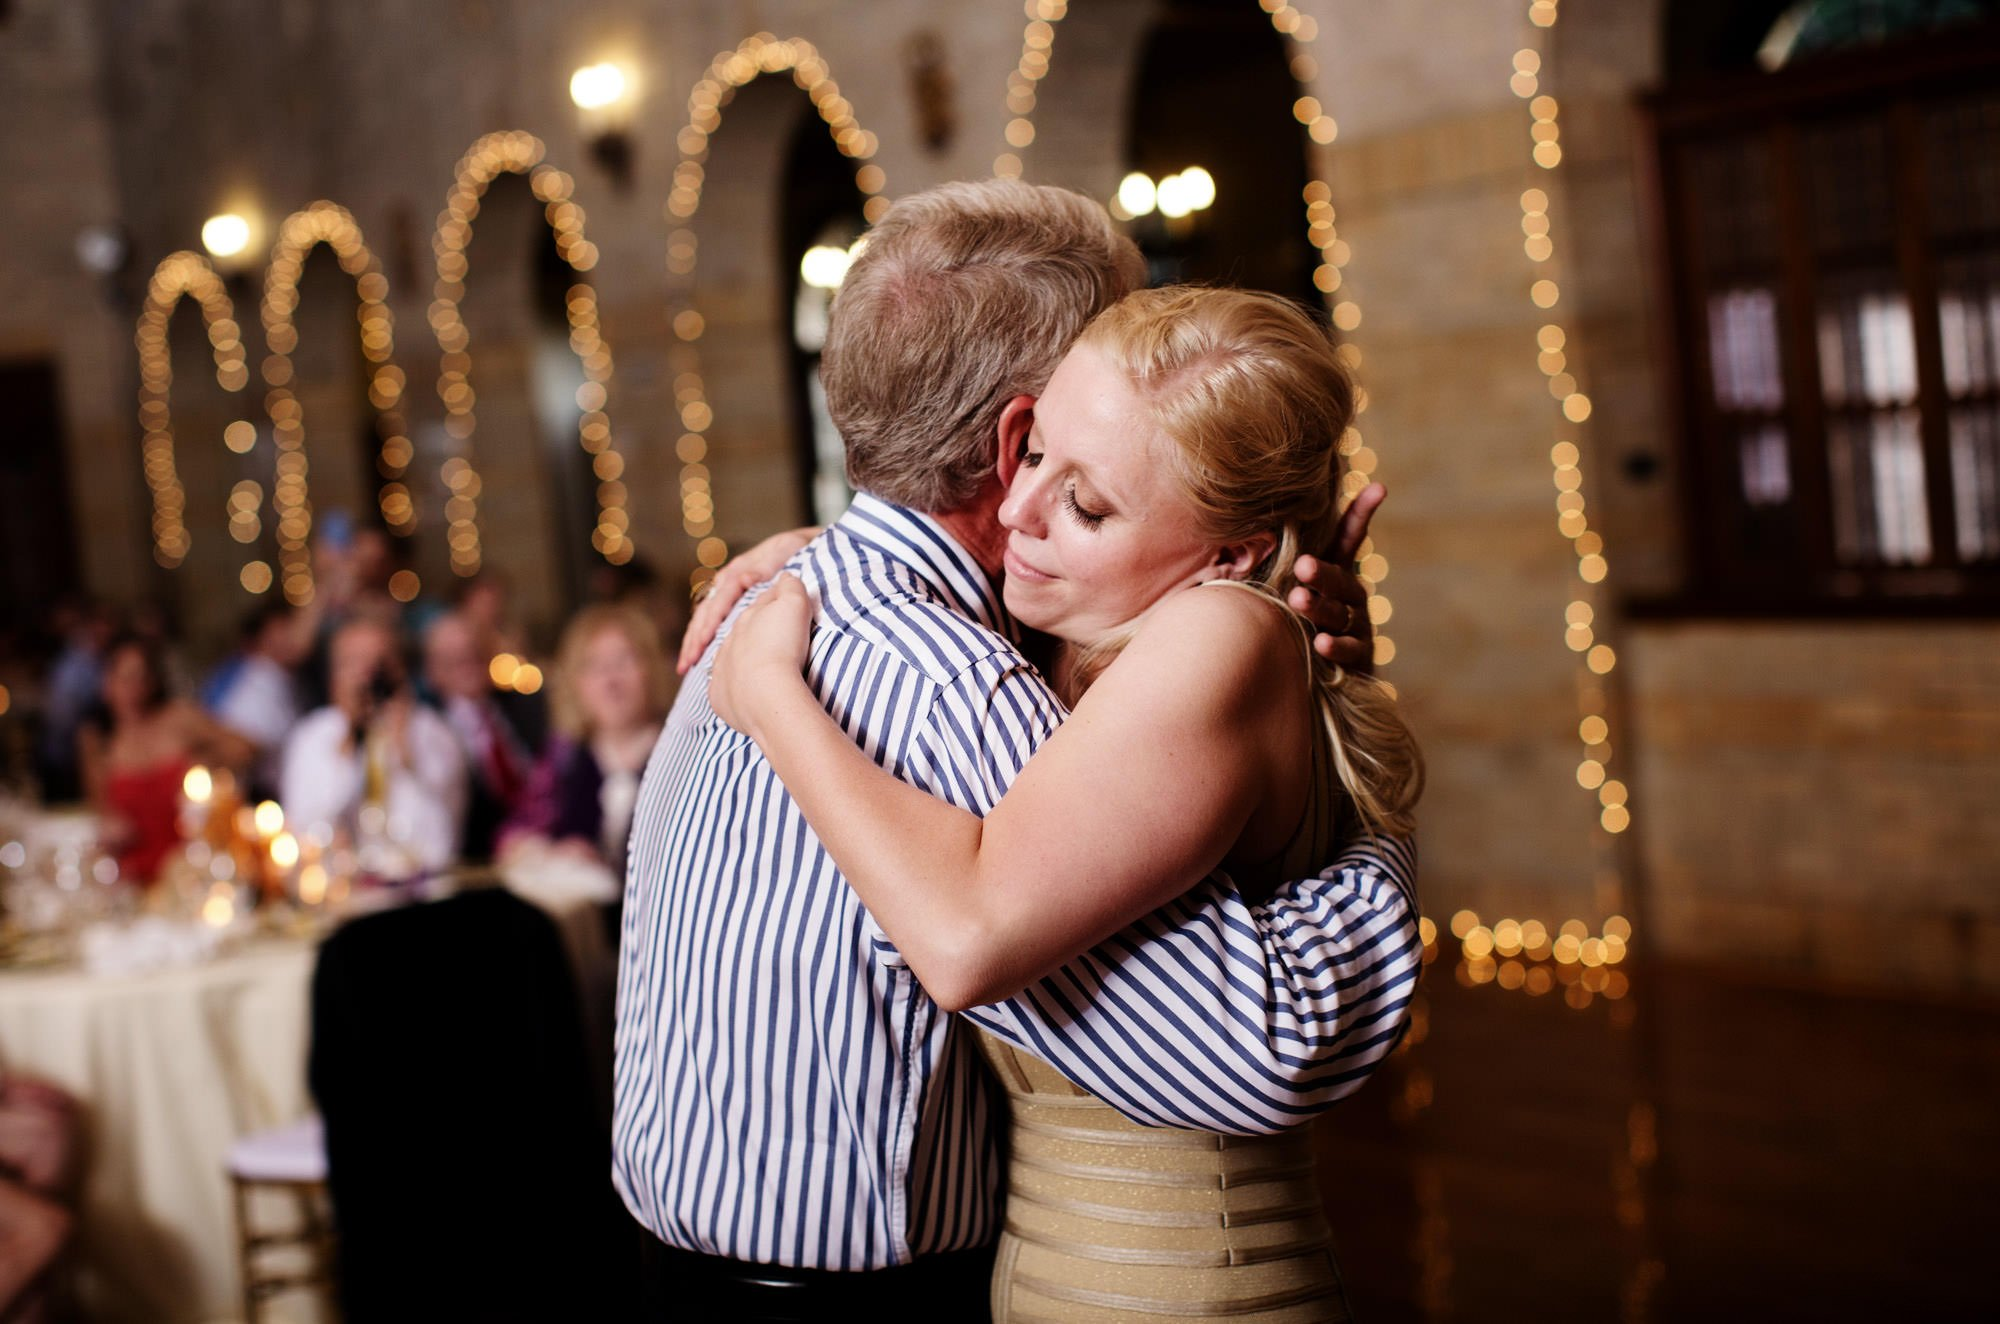 The bride hugs her father during the wedding reception at St Francis Hall.